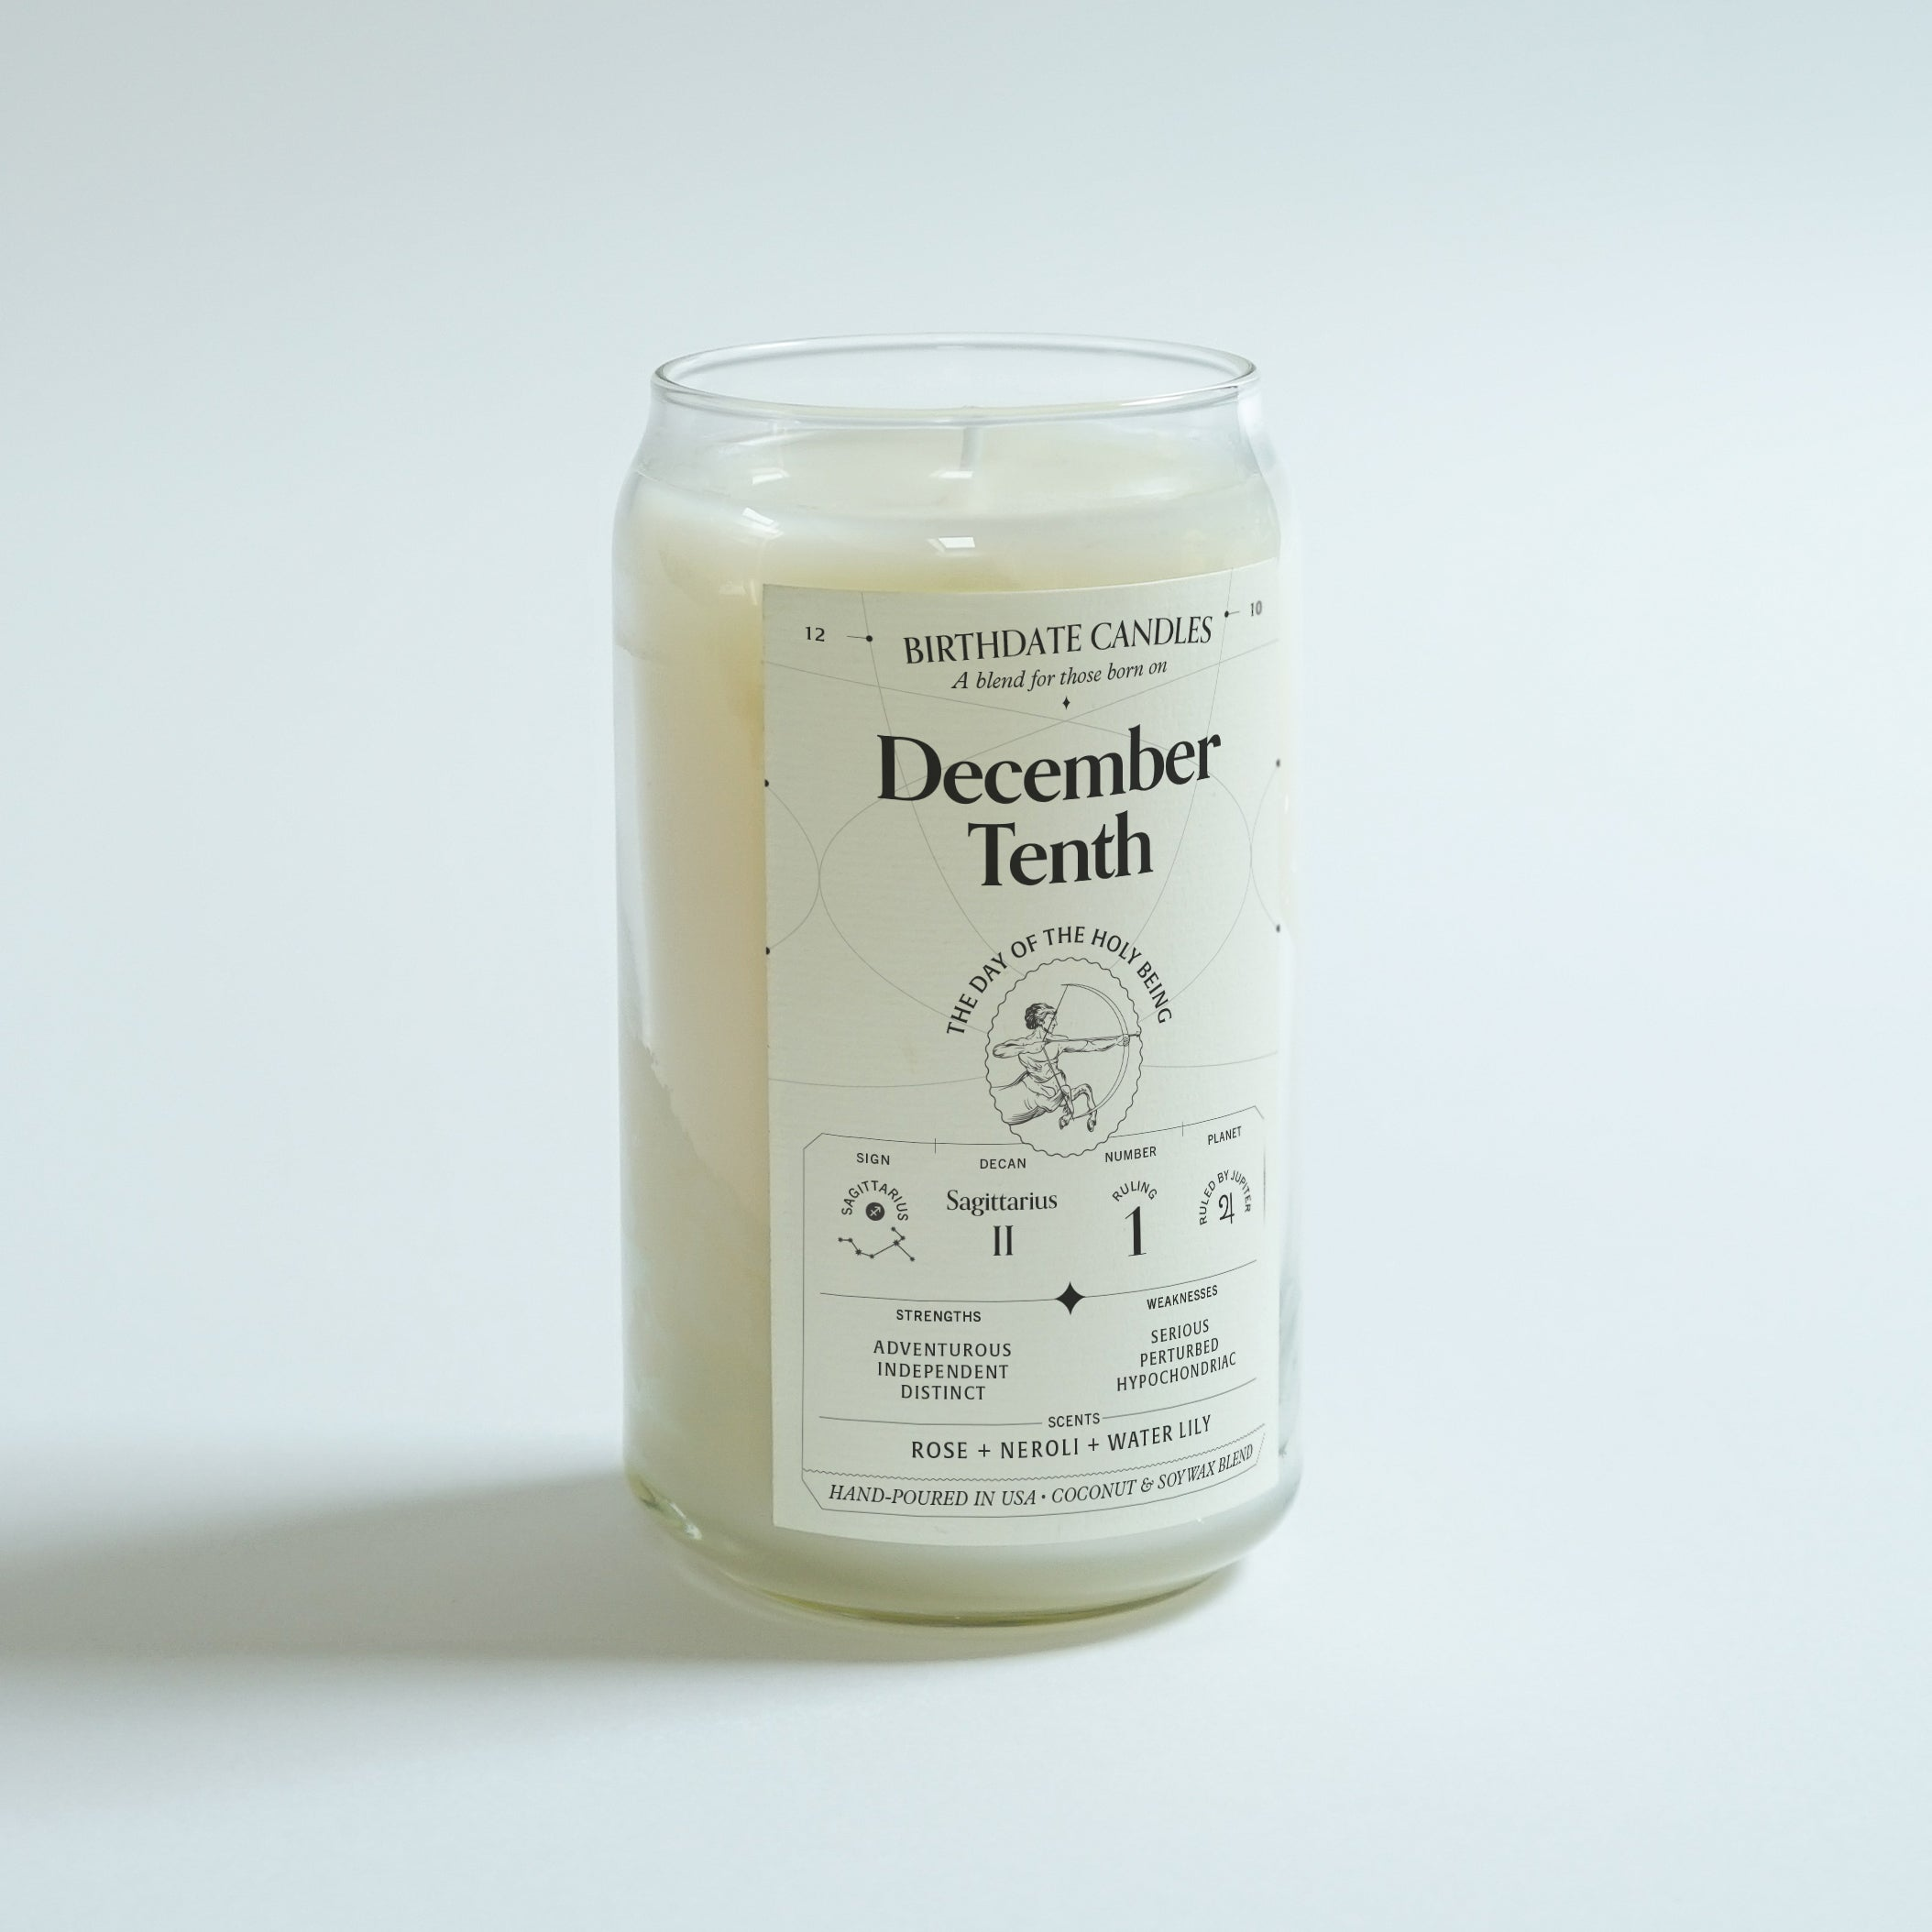 The December Tenth Candle